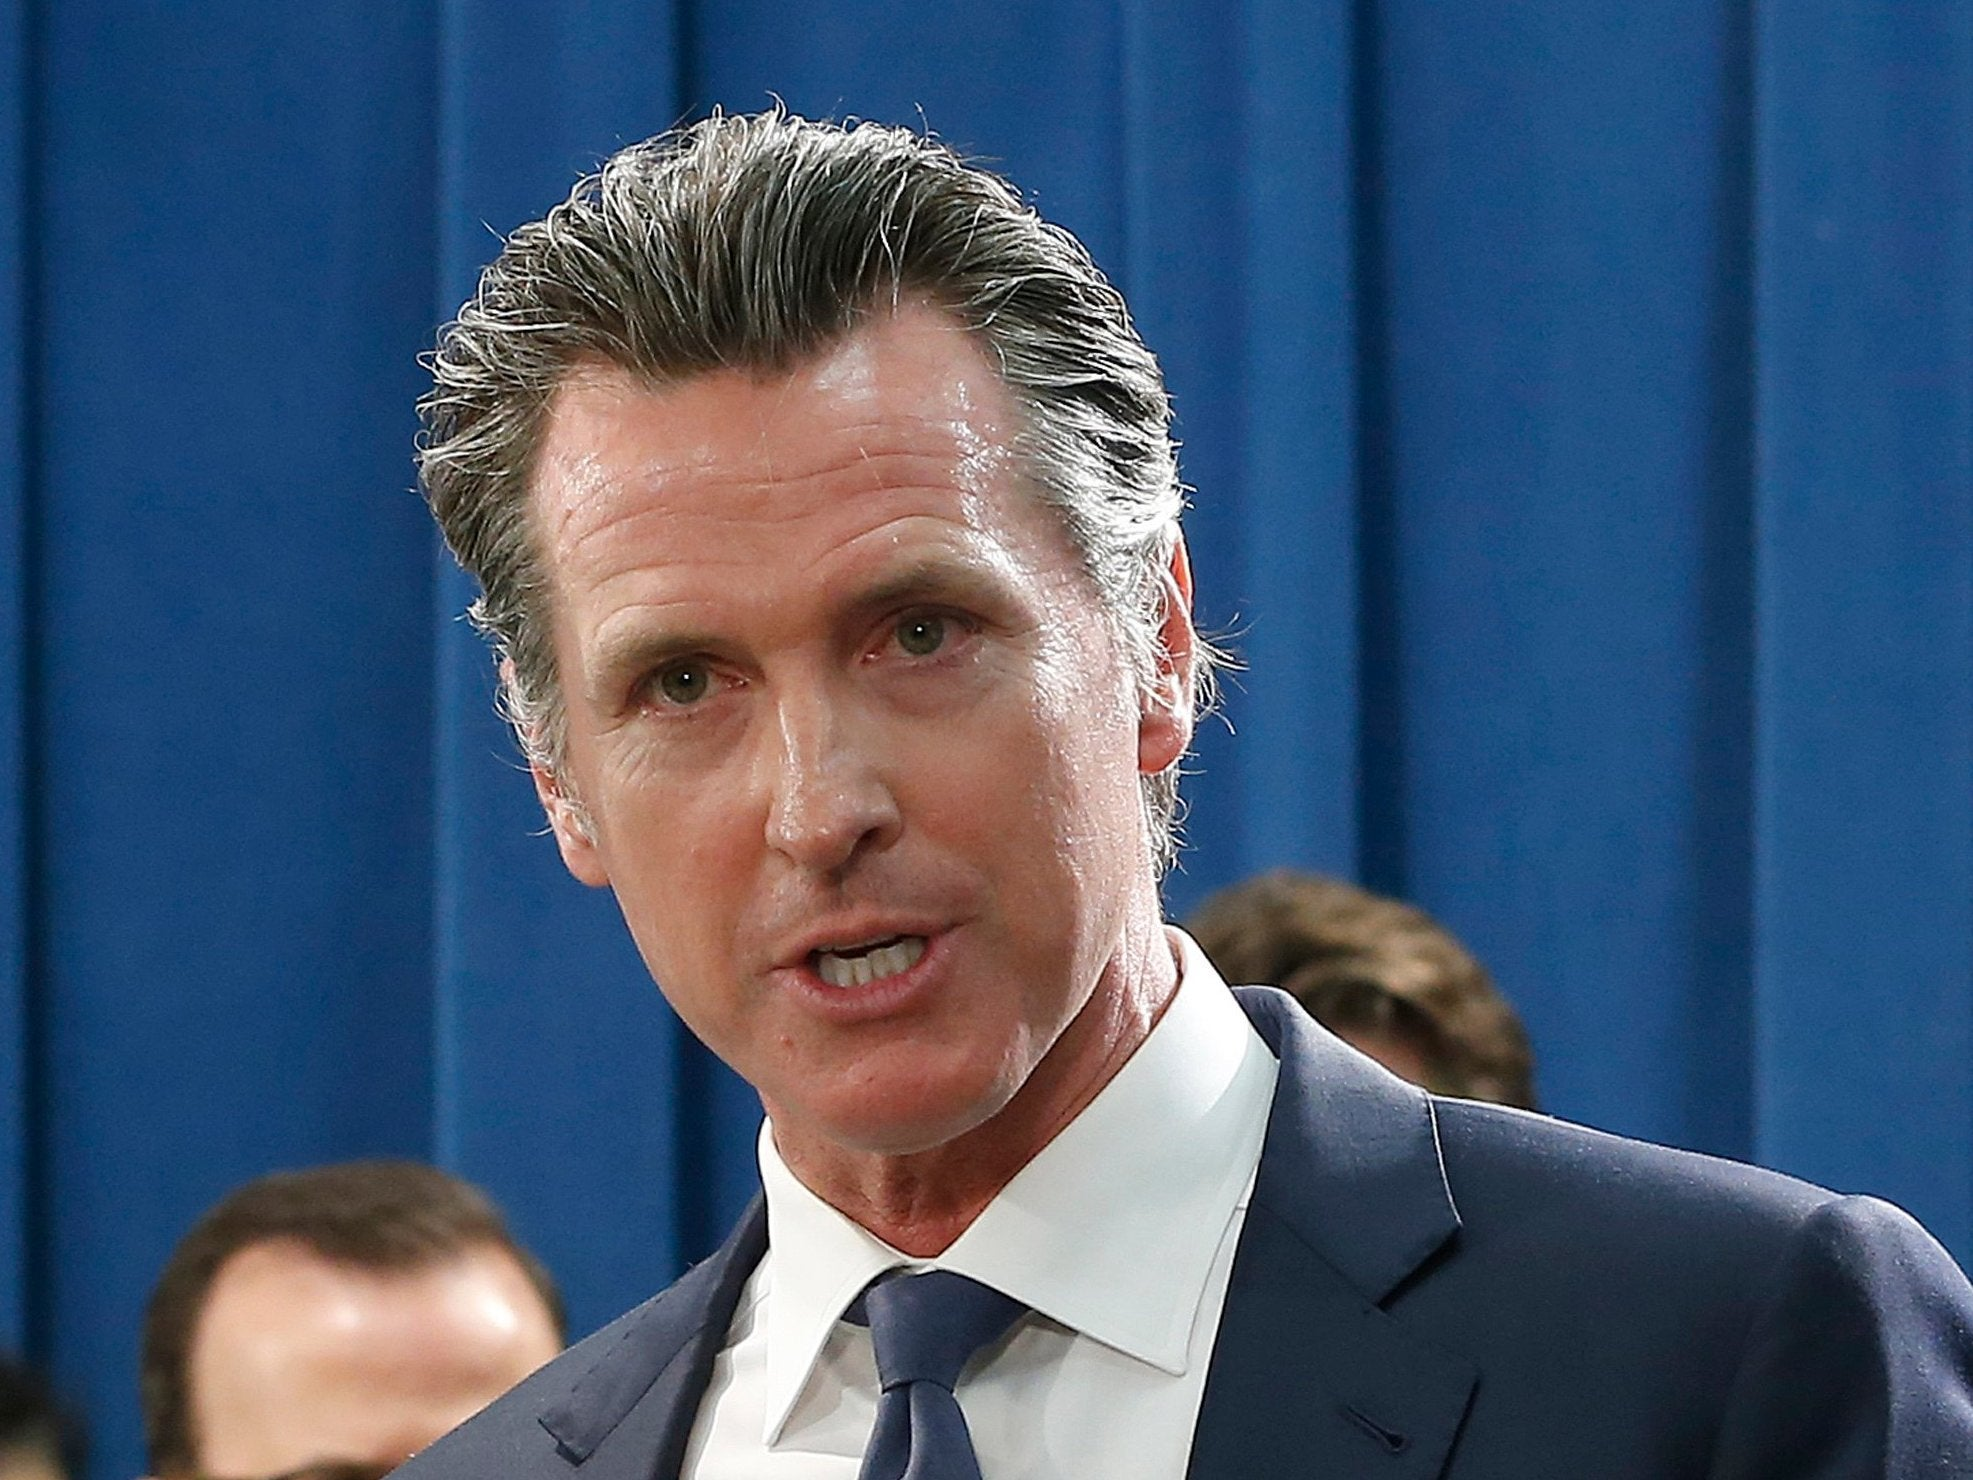 California governor vetoes bill stopping Trump environment rollbacks: 'Special interests threatened and won'